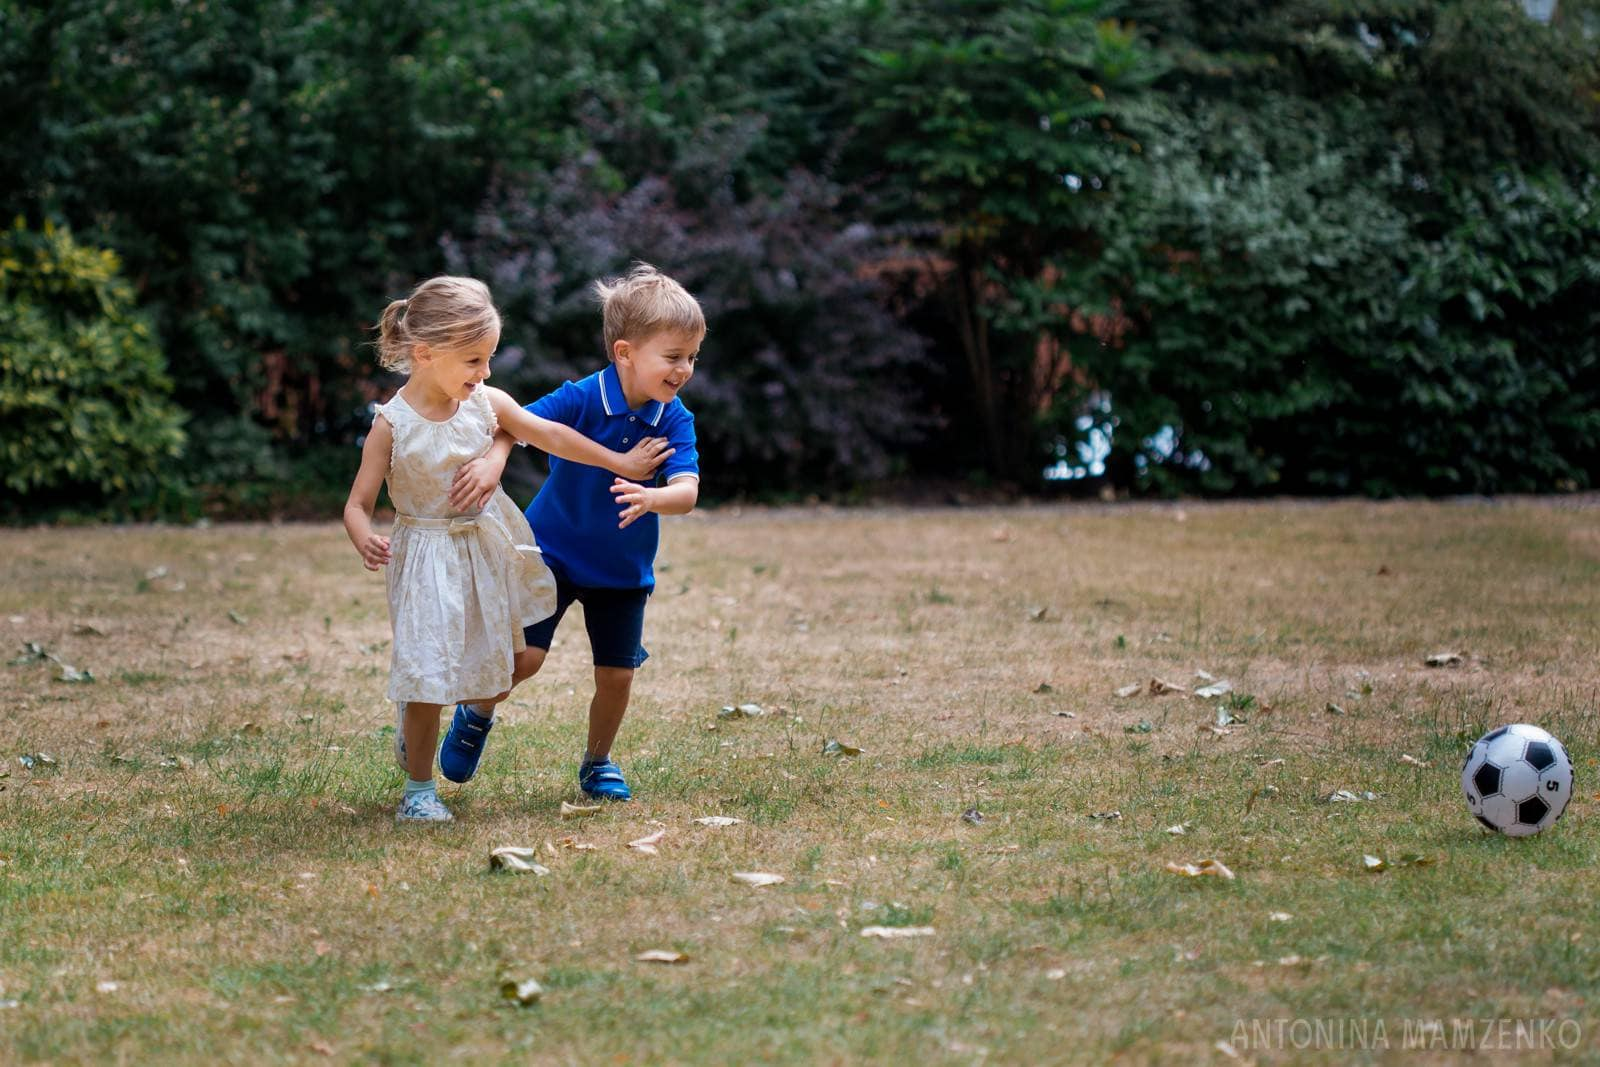 bother and sister playing football in a private gardens in chelsea, london